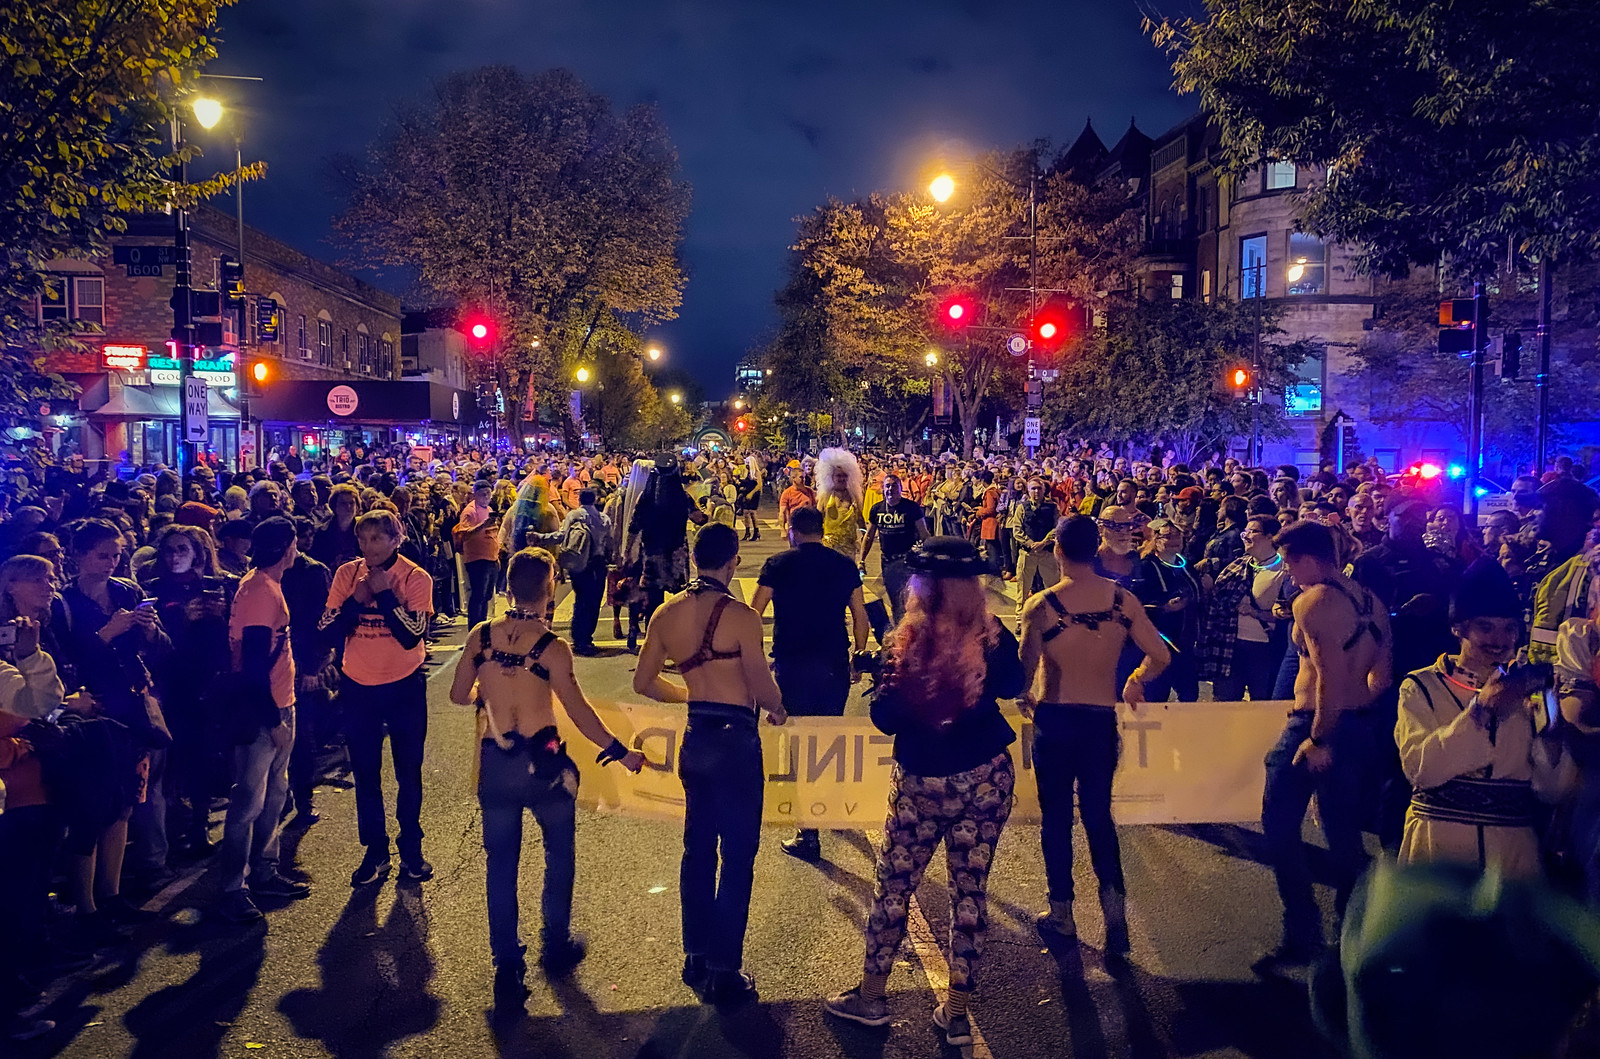 2019.10.29 17th Street High Heel Race, Washington, DC USA 302 23029